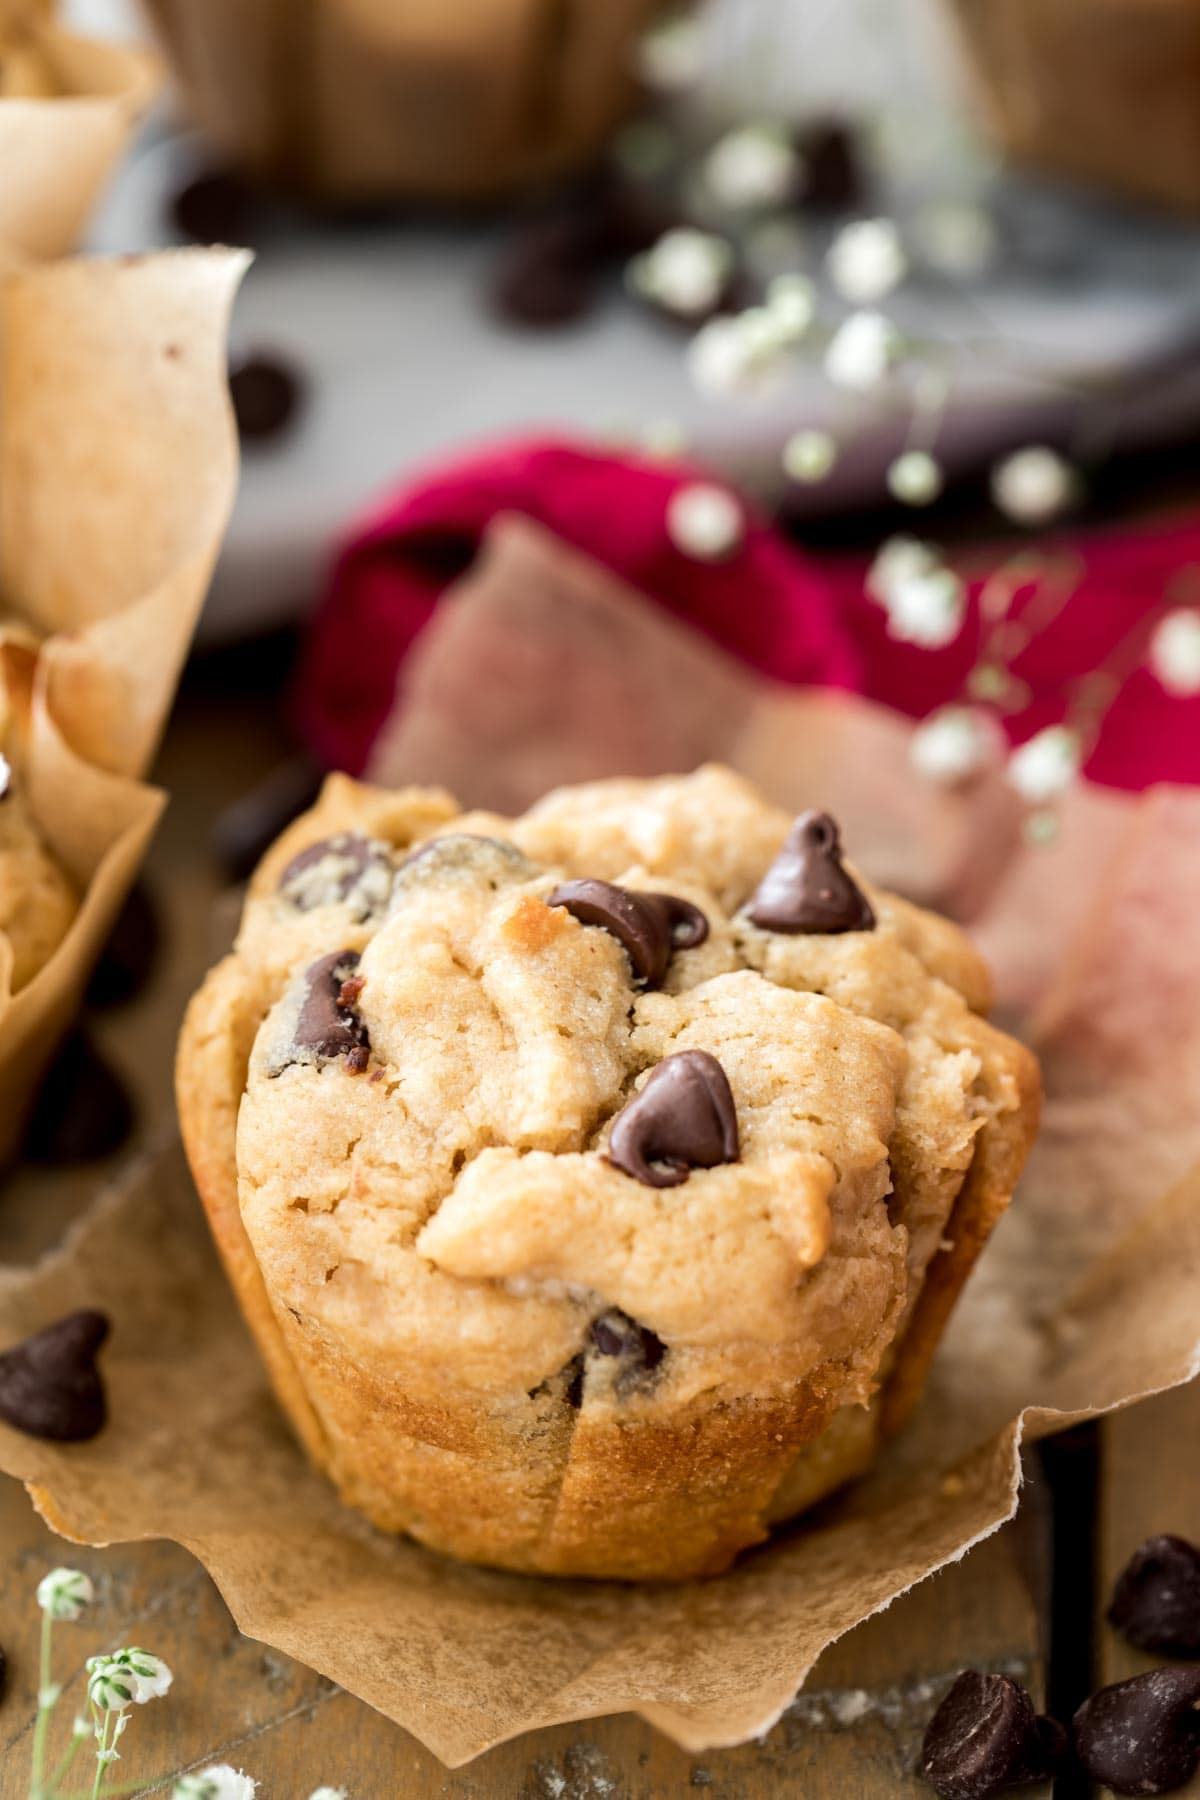 peanut butter muffin with chocolate chips on brown parchment paper